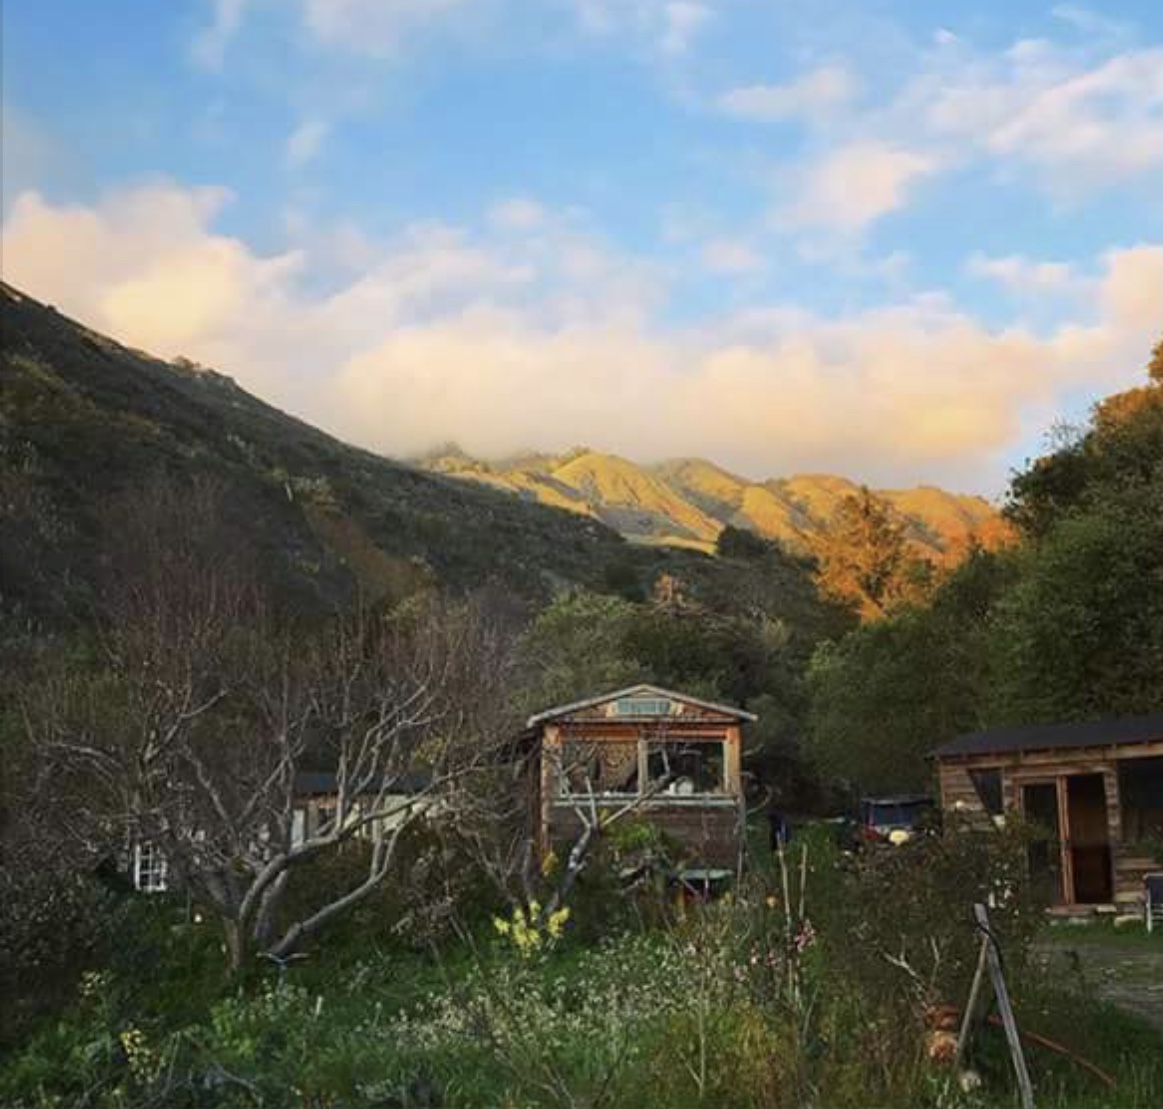 Retreats   A time to get away from the daily grind and connect deeper with yourself, retreats can be rejuvenating, transformative and essential in providing yourself with the space and self-care tools needed to navigate your life in a way that aligns with your truest essence. Unlock your ease, joy and potential!   Women's camping Yoga Retreat in Big Sur ~ Aug/Sept 2018